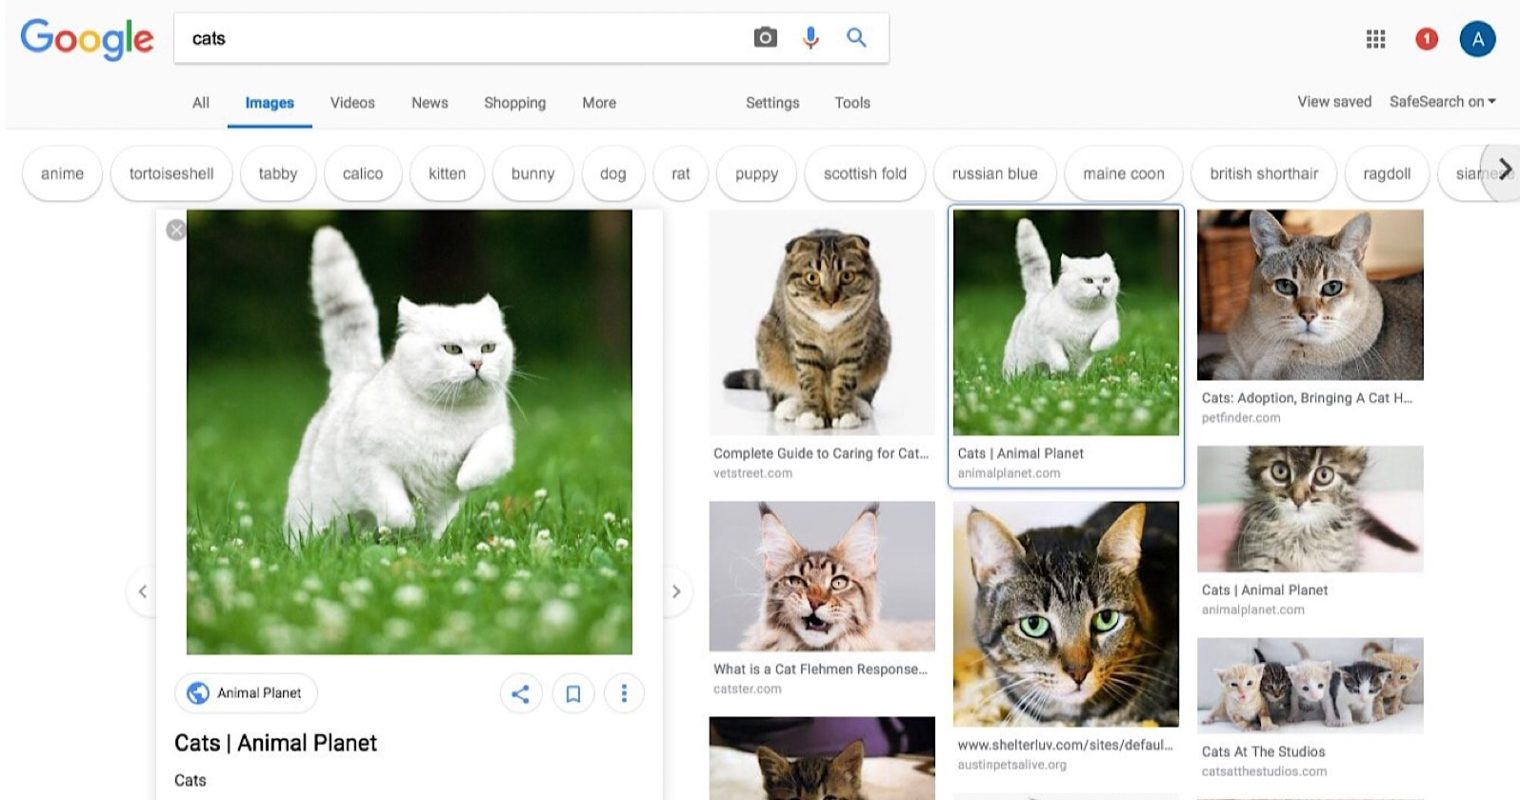 Google Tests New Design for Image Search Results